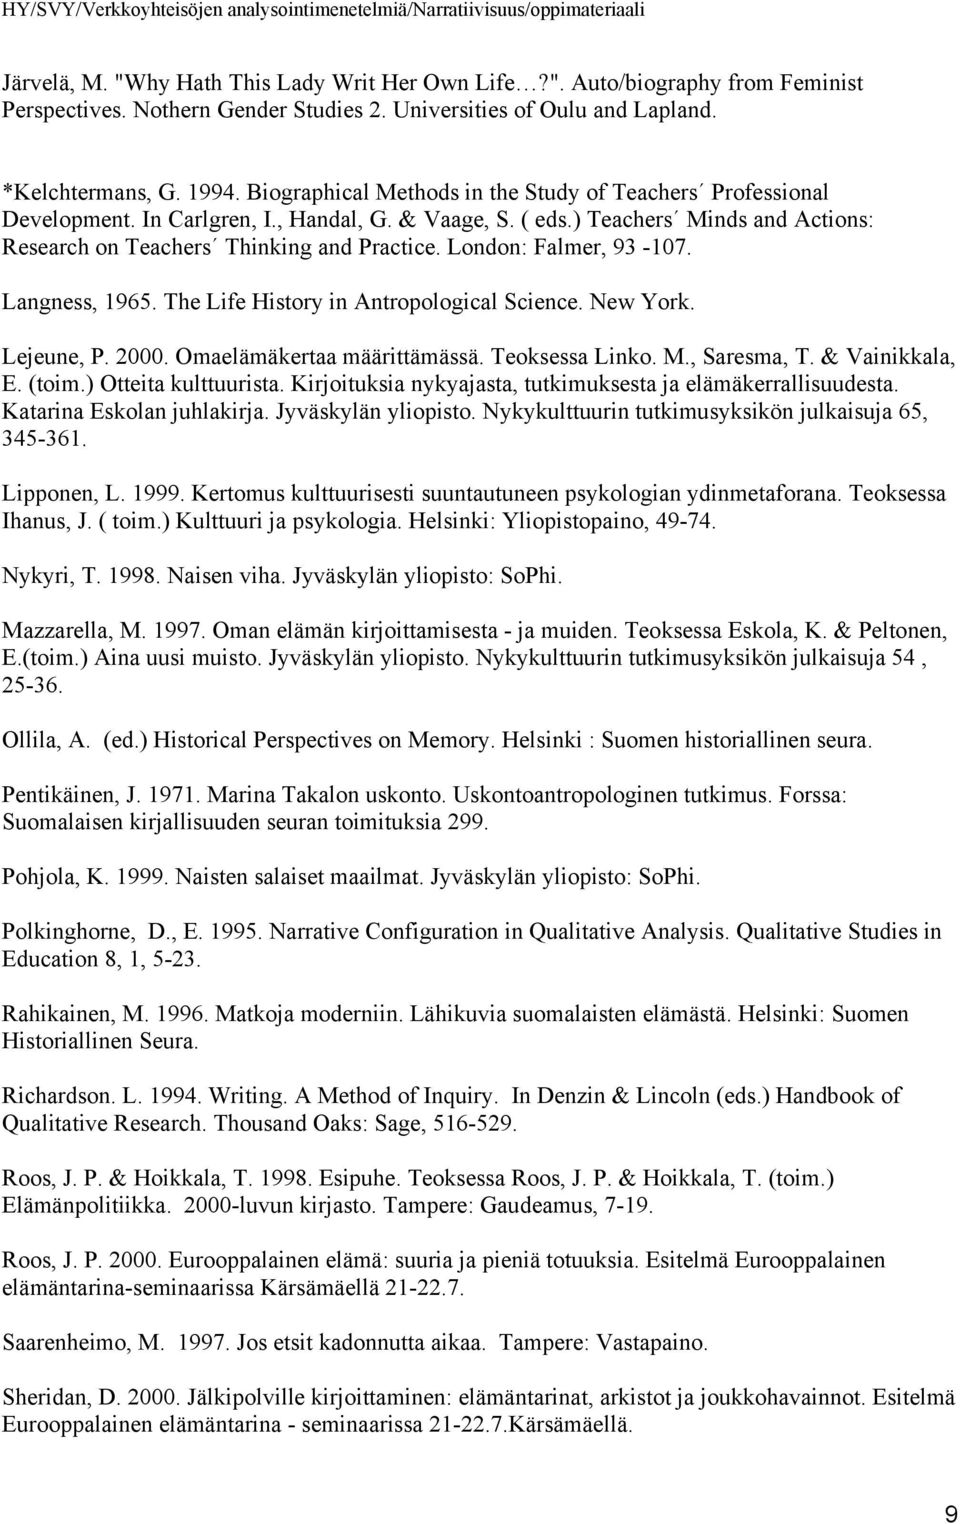 London: Falmer, 93-107. Langness, 1965. The Life History in Antropological Science. New York. Lejeune, P. 2000. Omaelämäkertaa määrittämässä. Teoksessa Linko. M., Saresma, T. & Vainikkala, E. (toim.